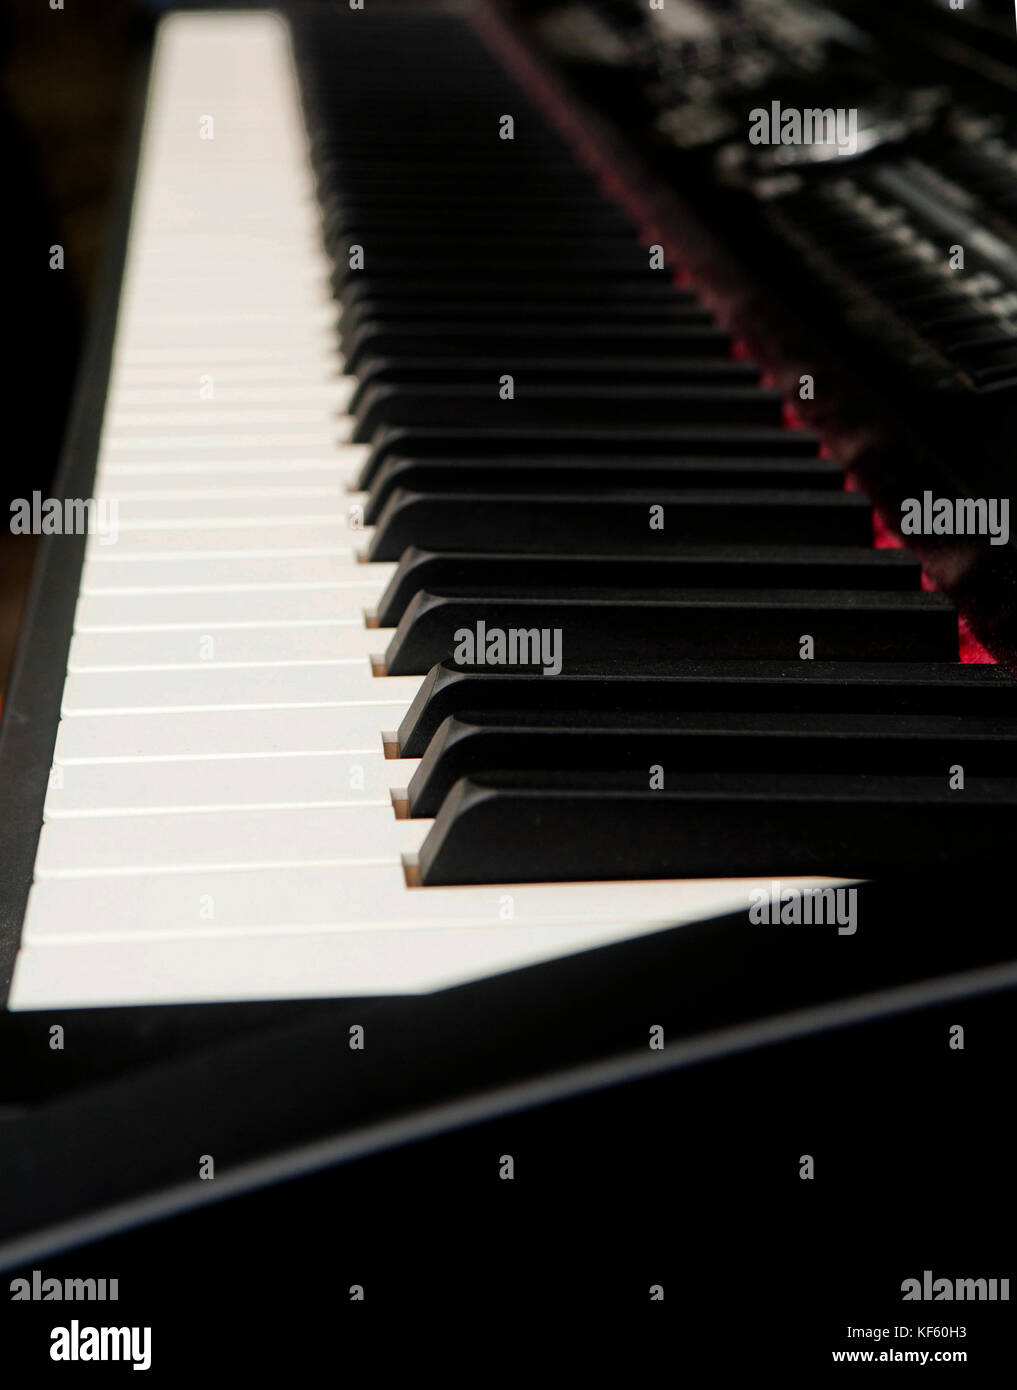 Piano keys on electric piano keyboard - Stock Image